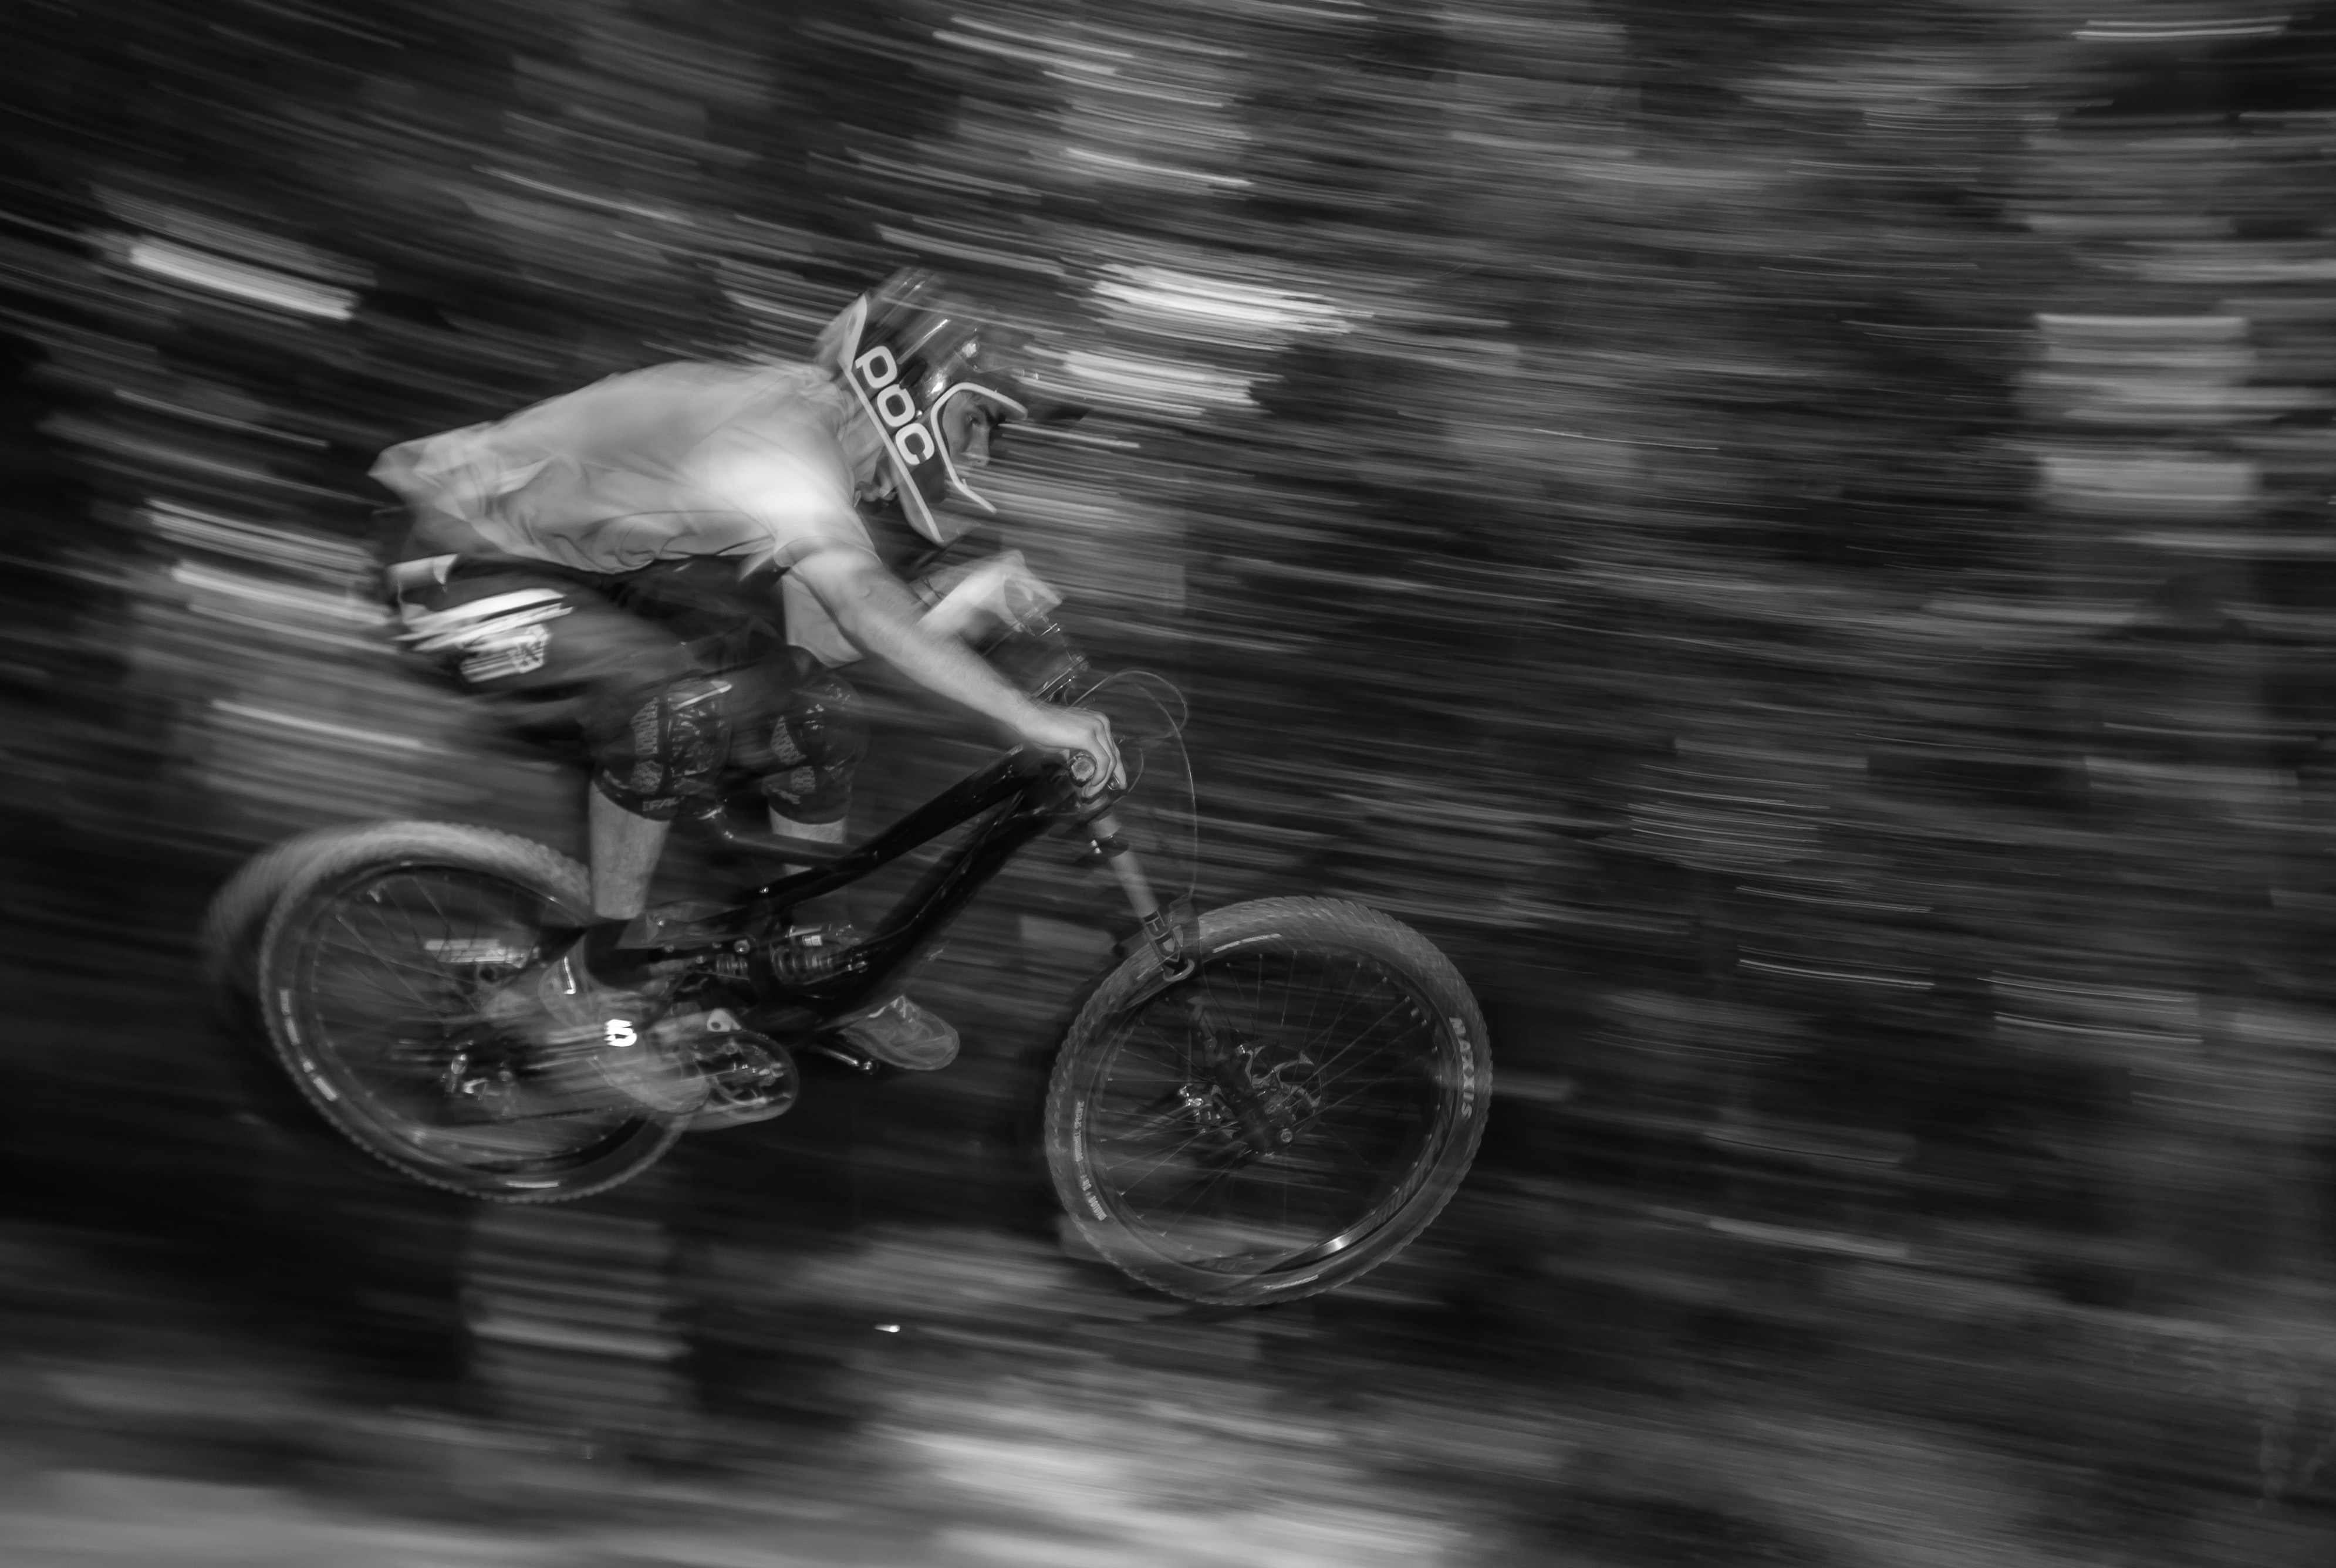 A mountain biker wearing a helmet and knee pads jumping through the air on his bike